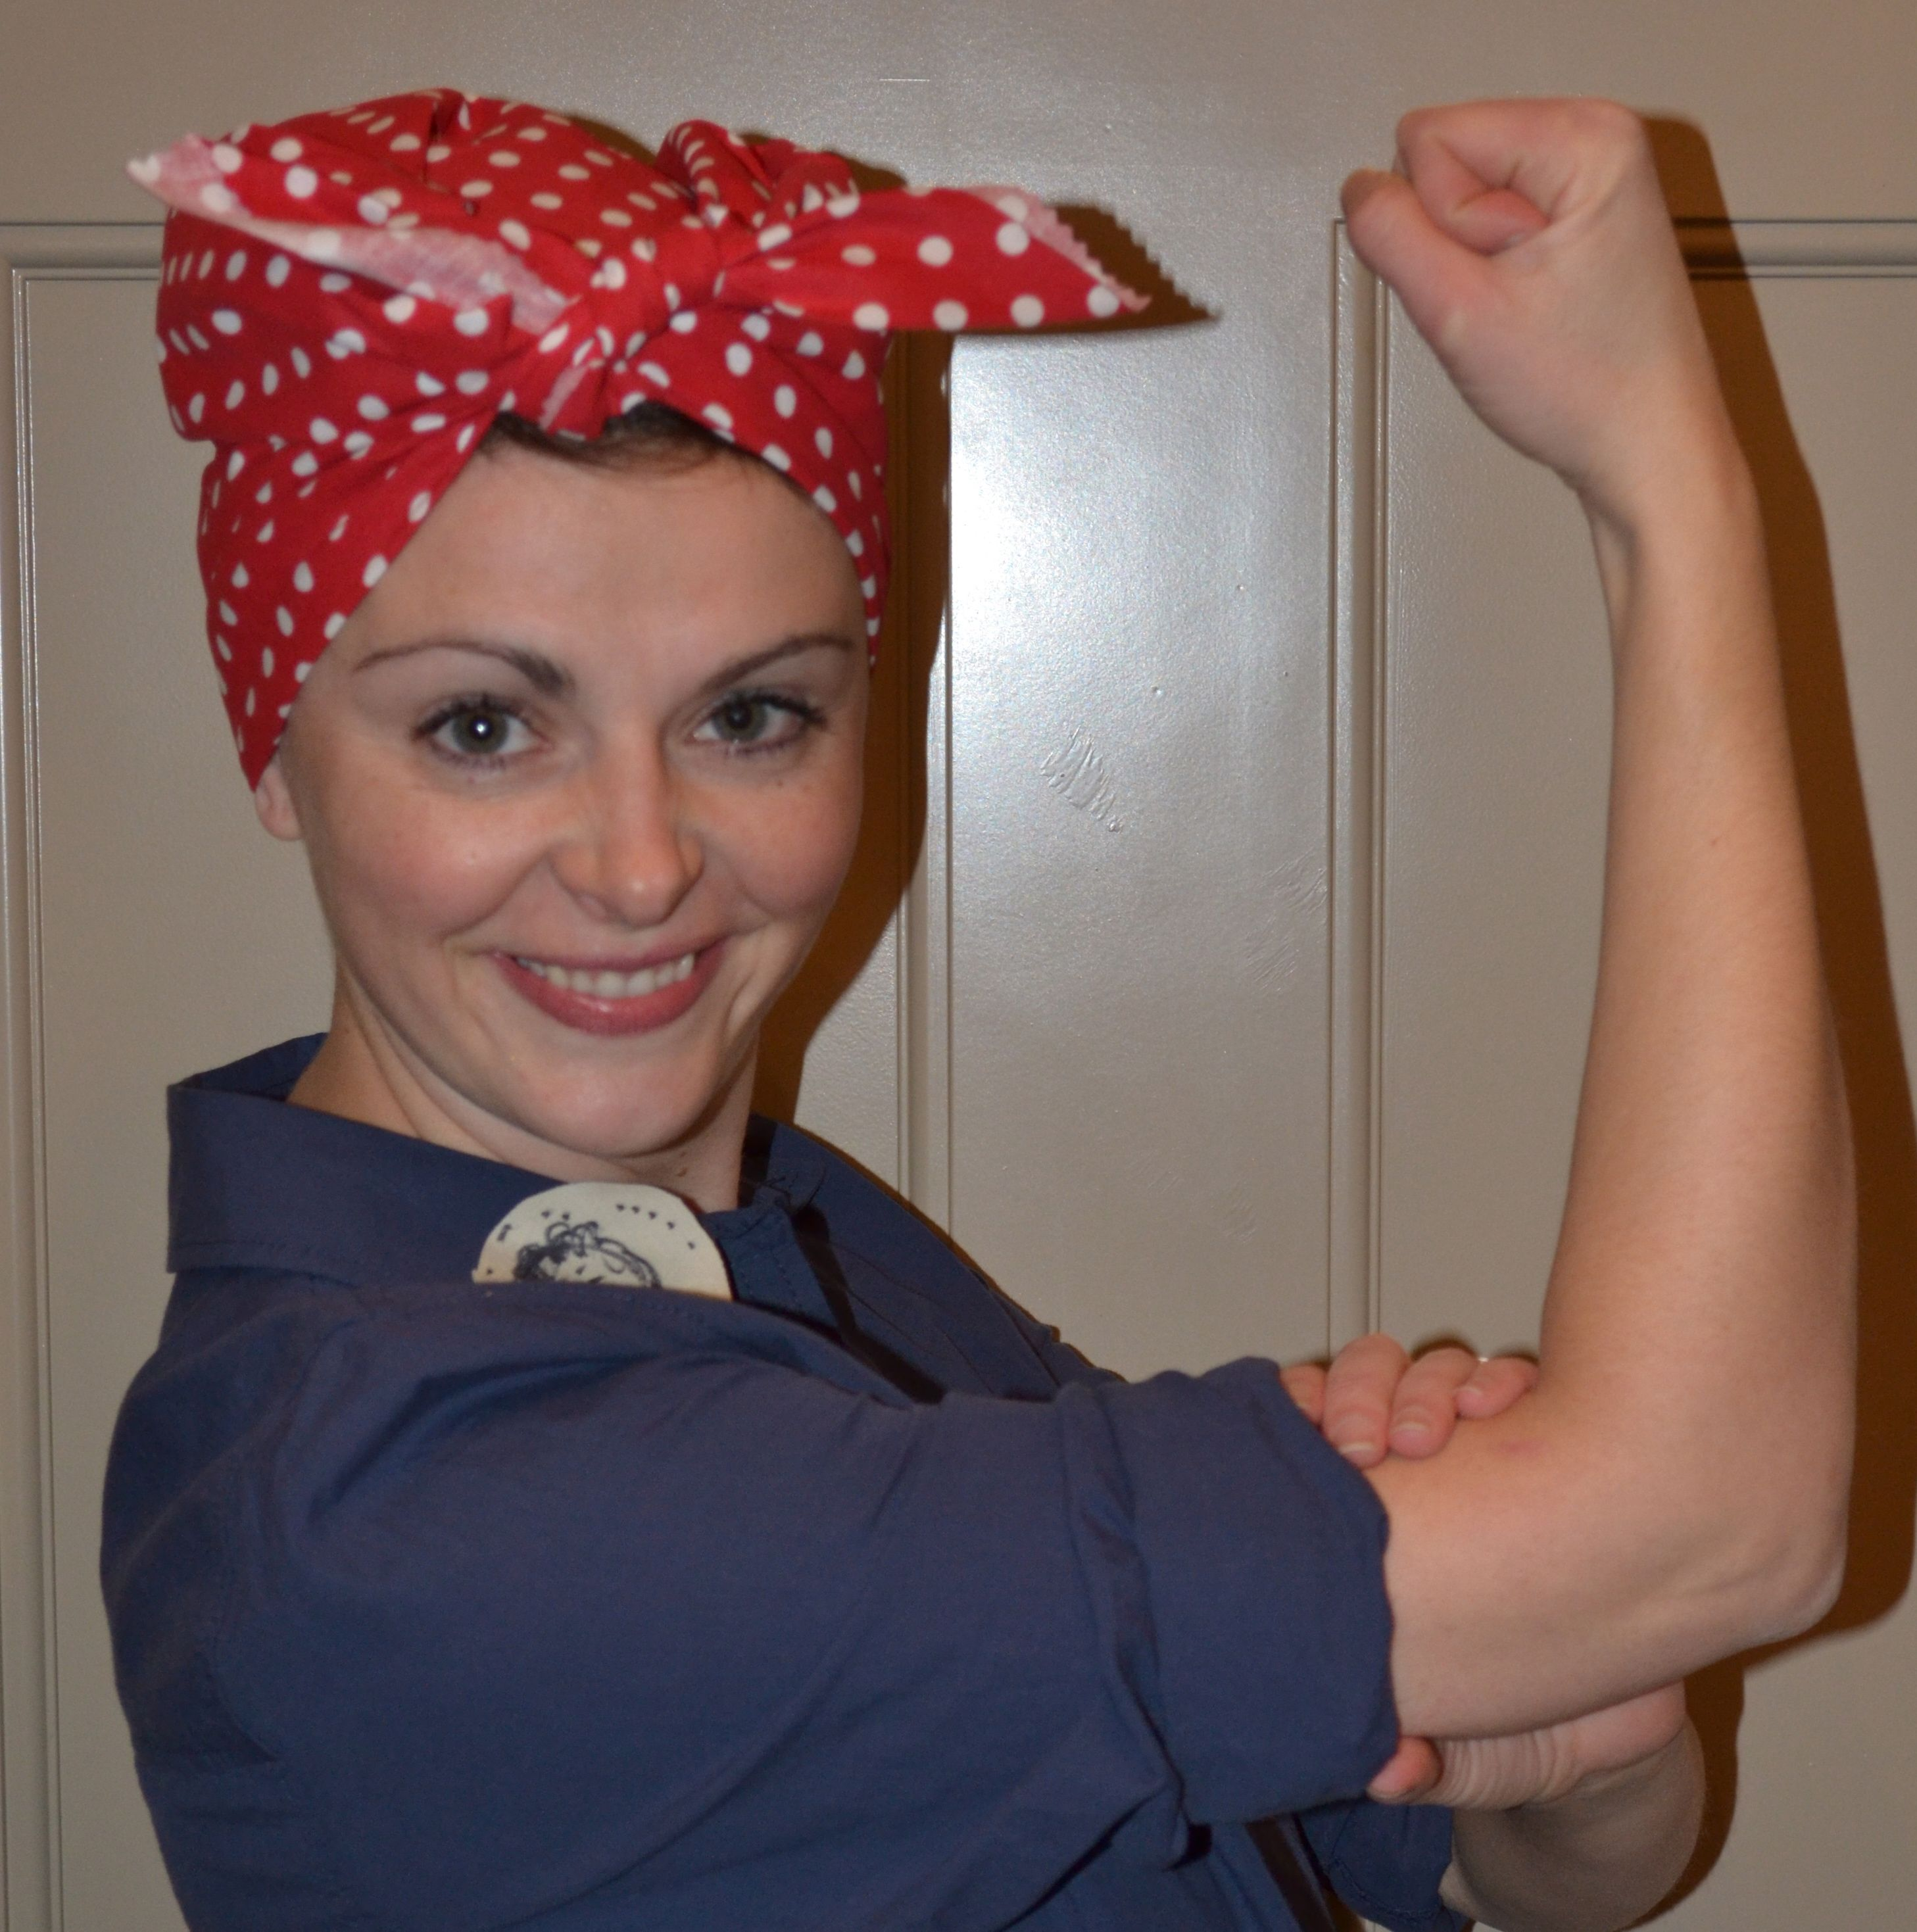 Halloween isn't just for the kids! The rosieMADE founder dressed as Rosie the Riveter!